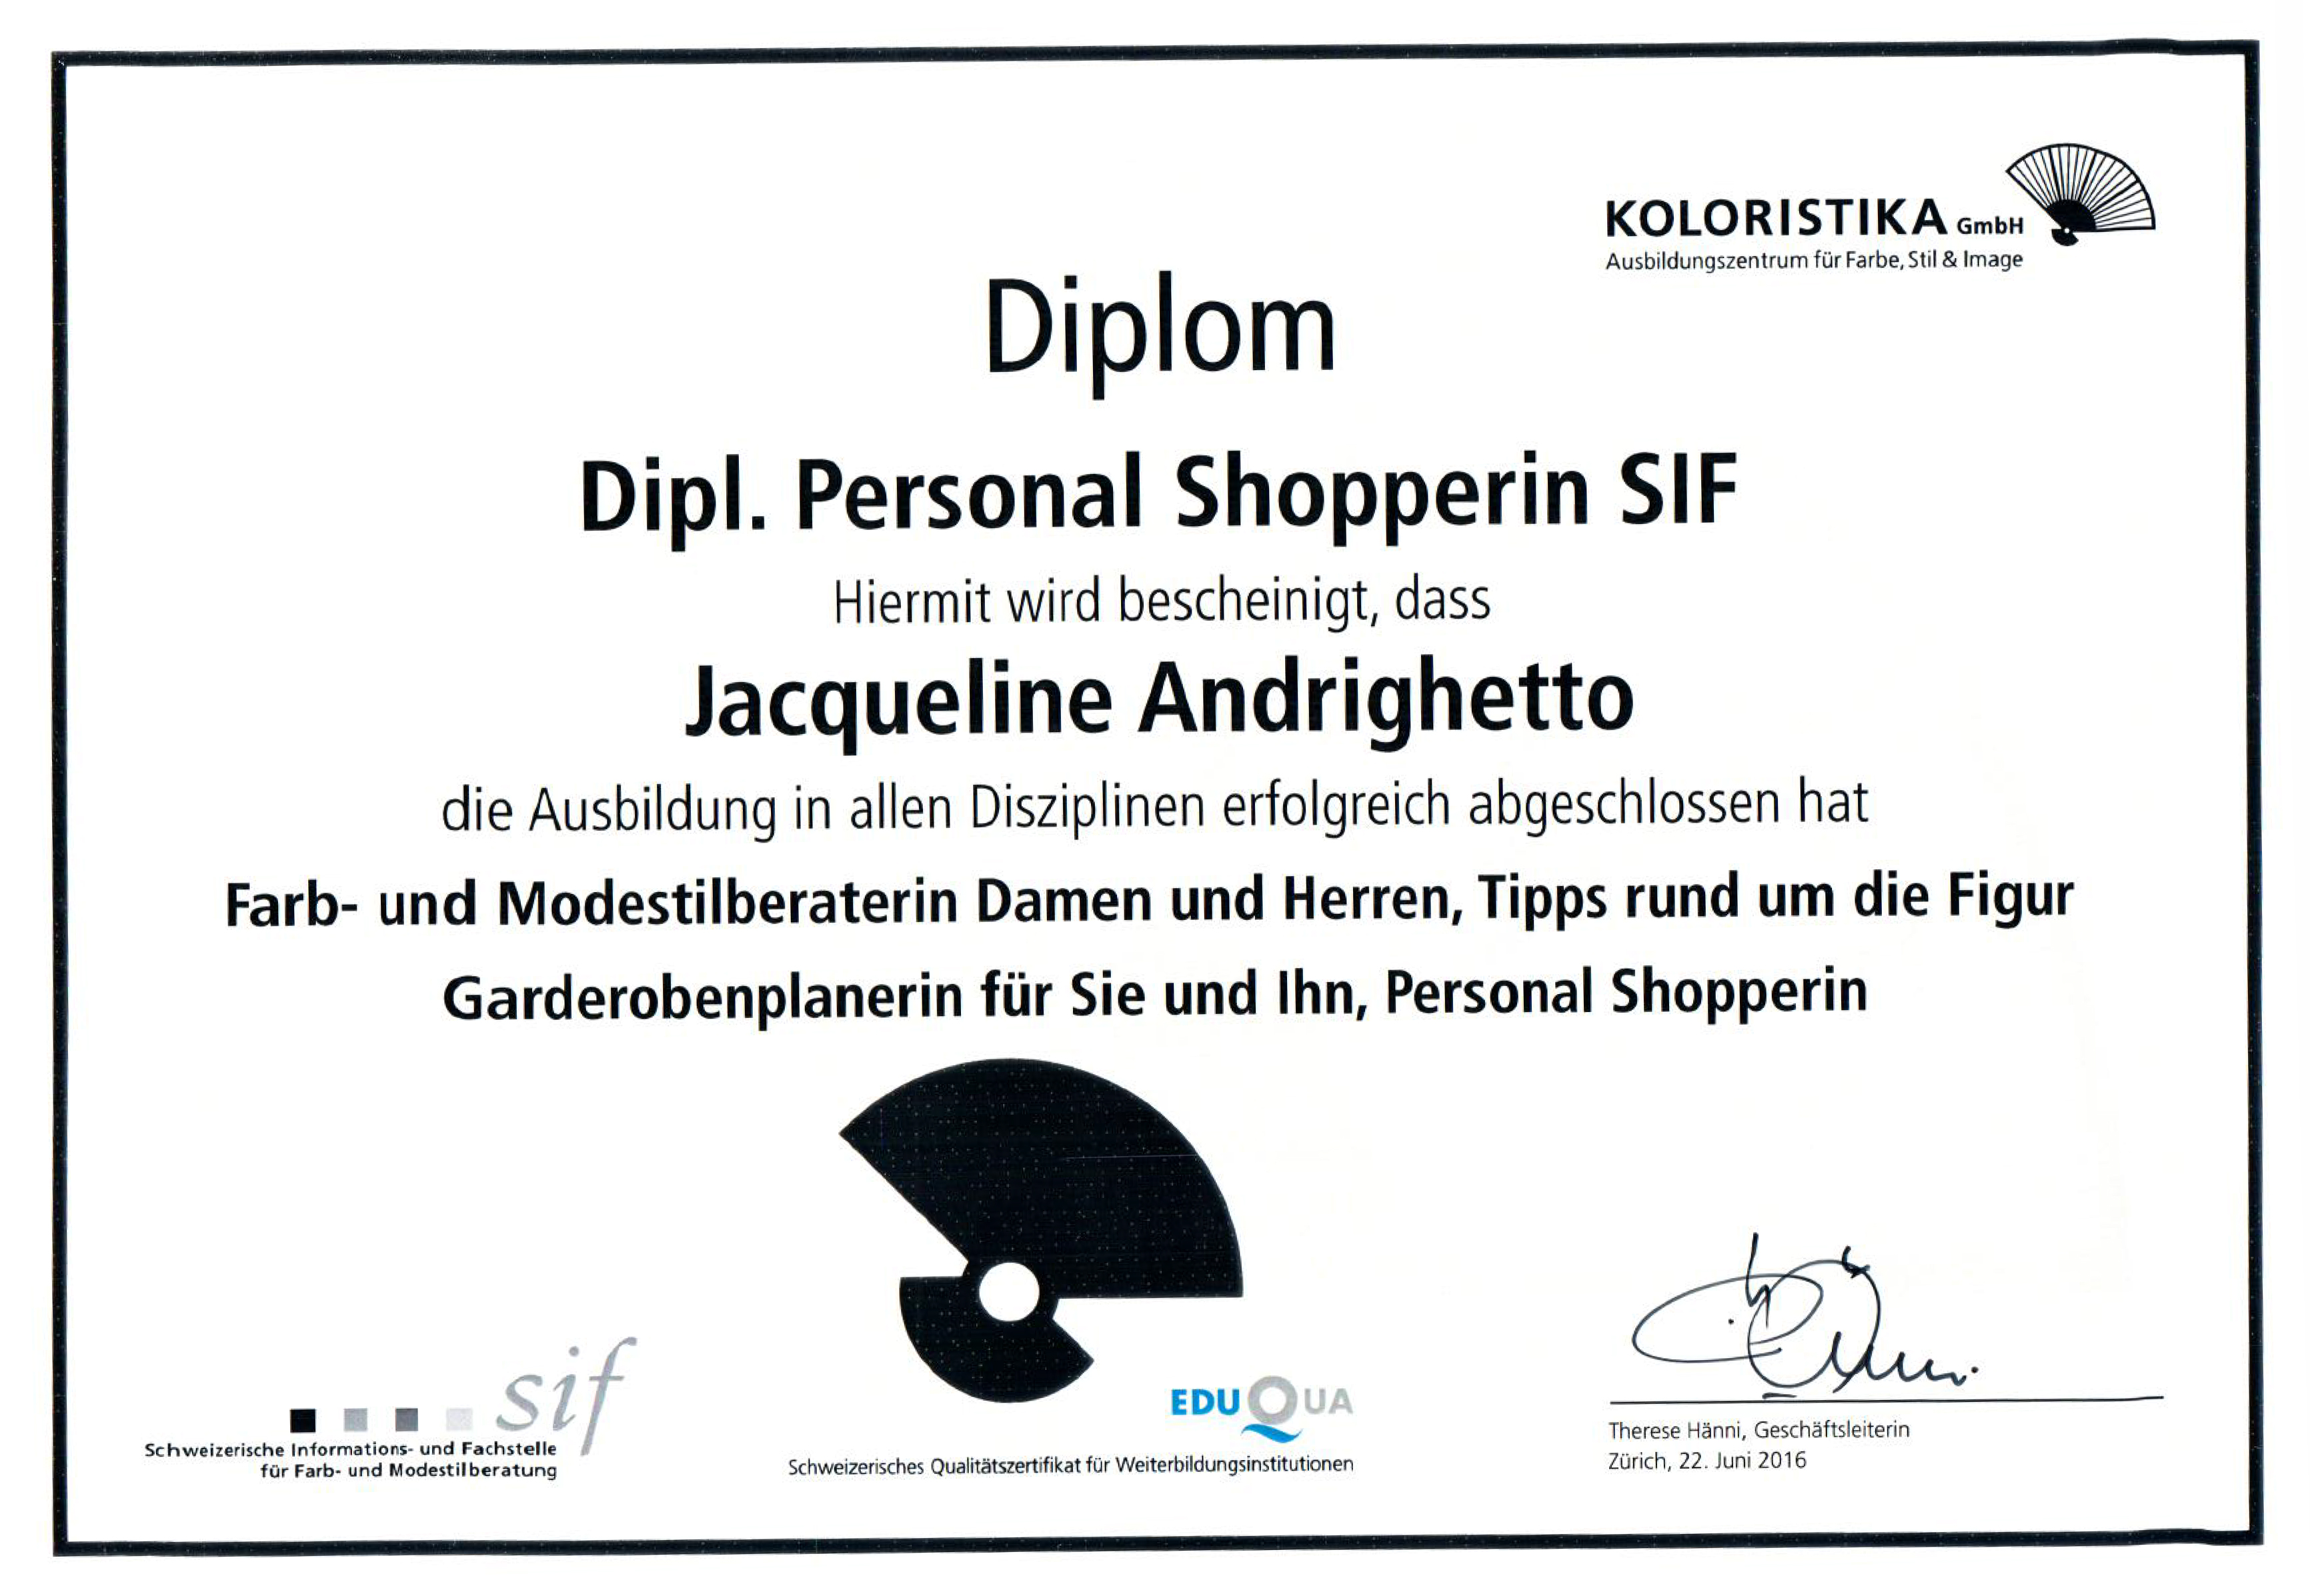 Dipl. Personal Shopperin SIF